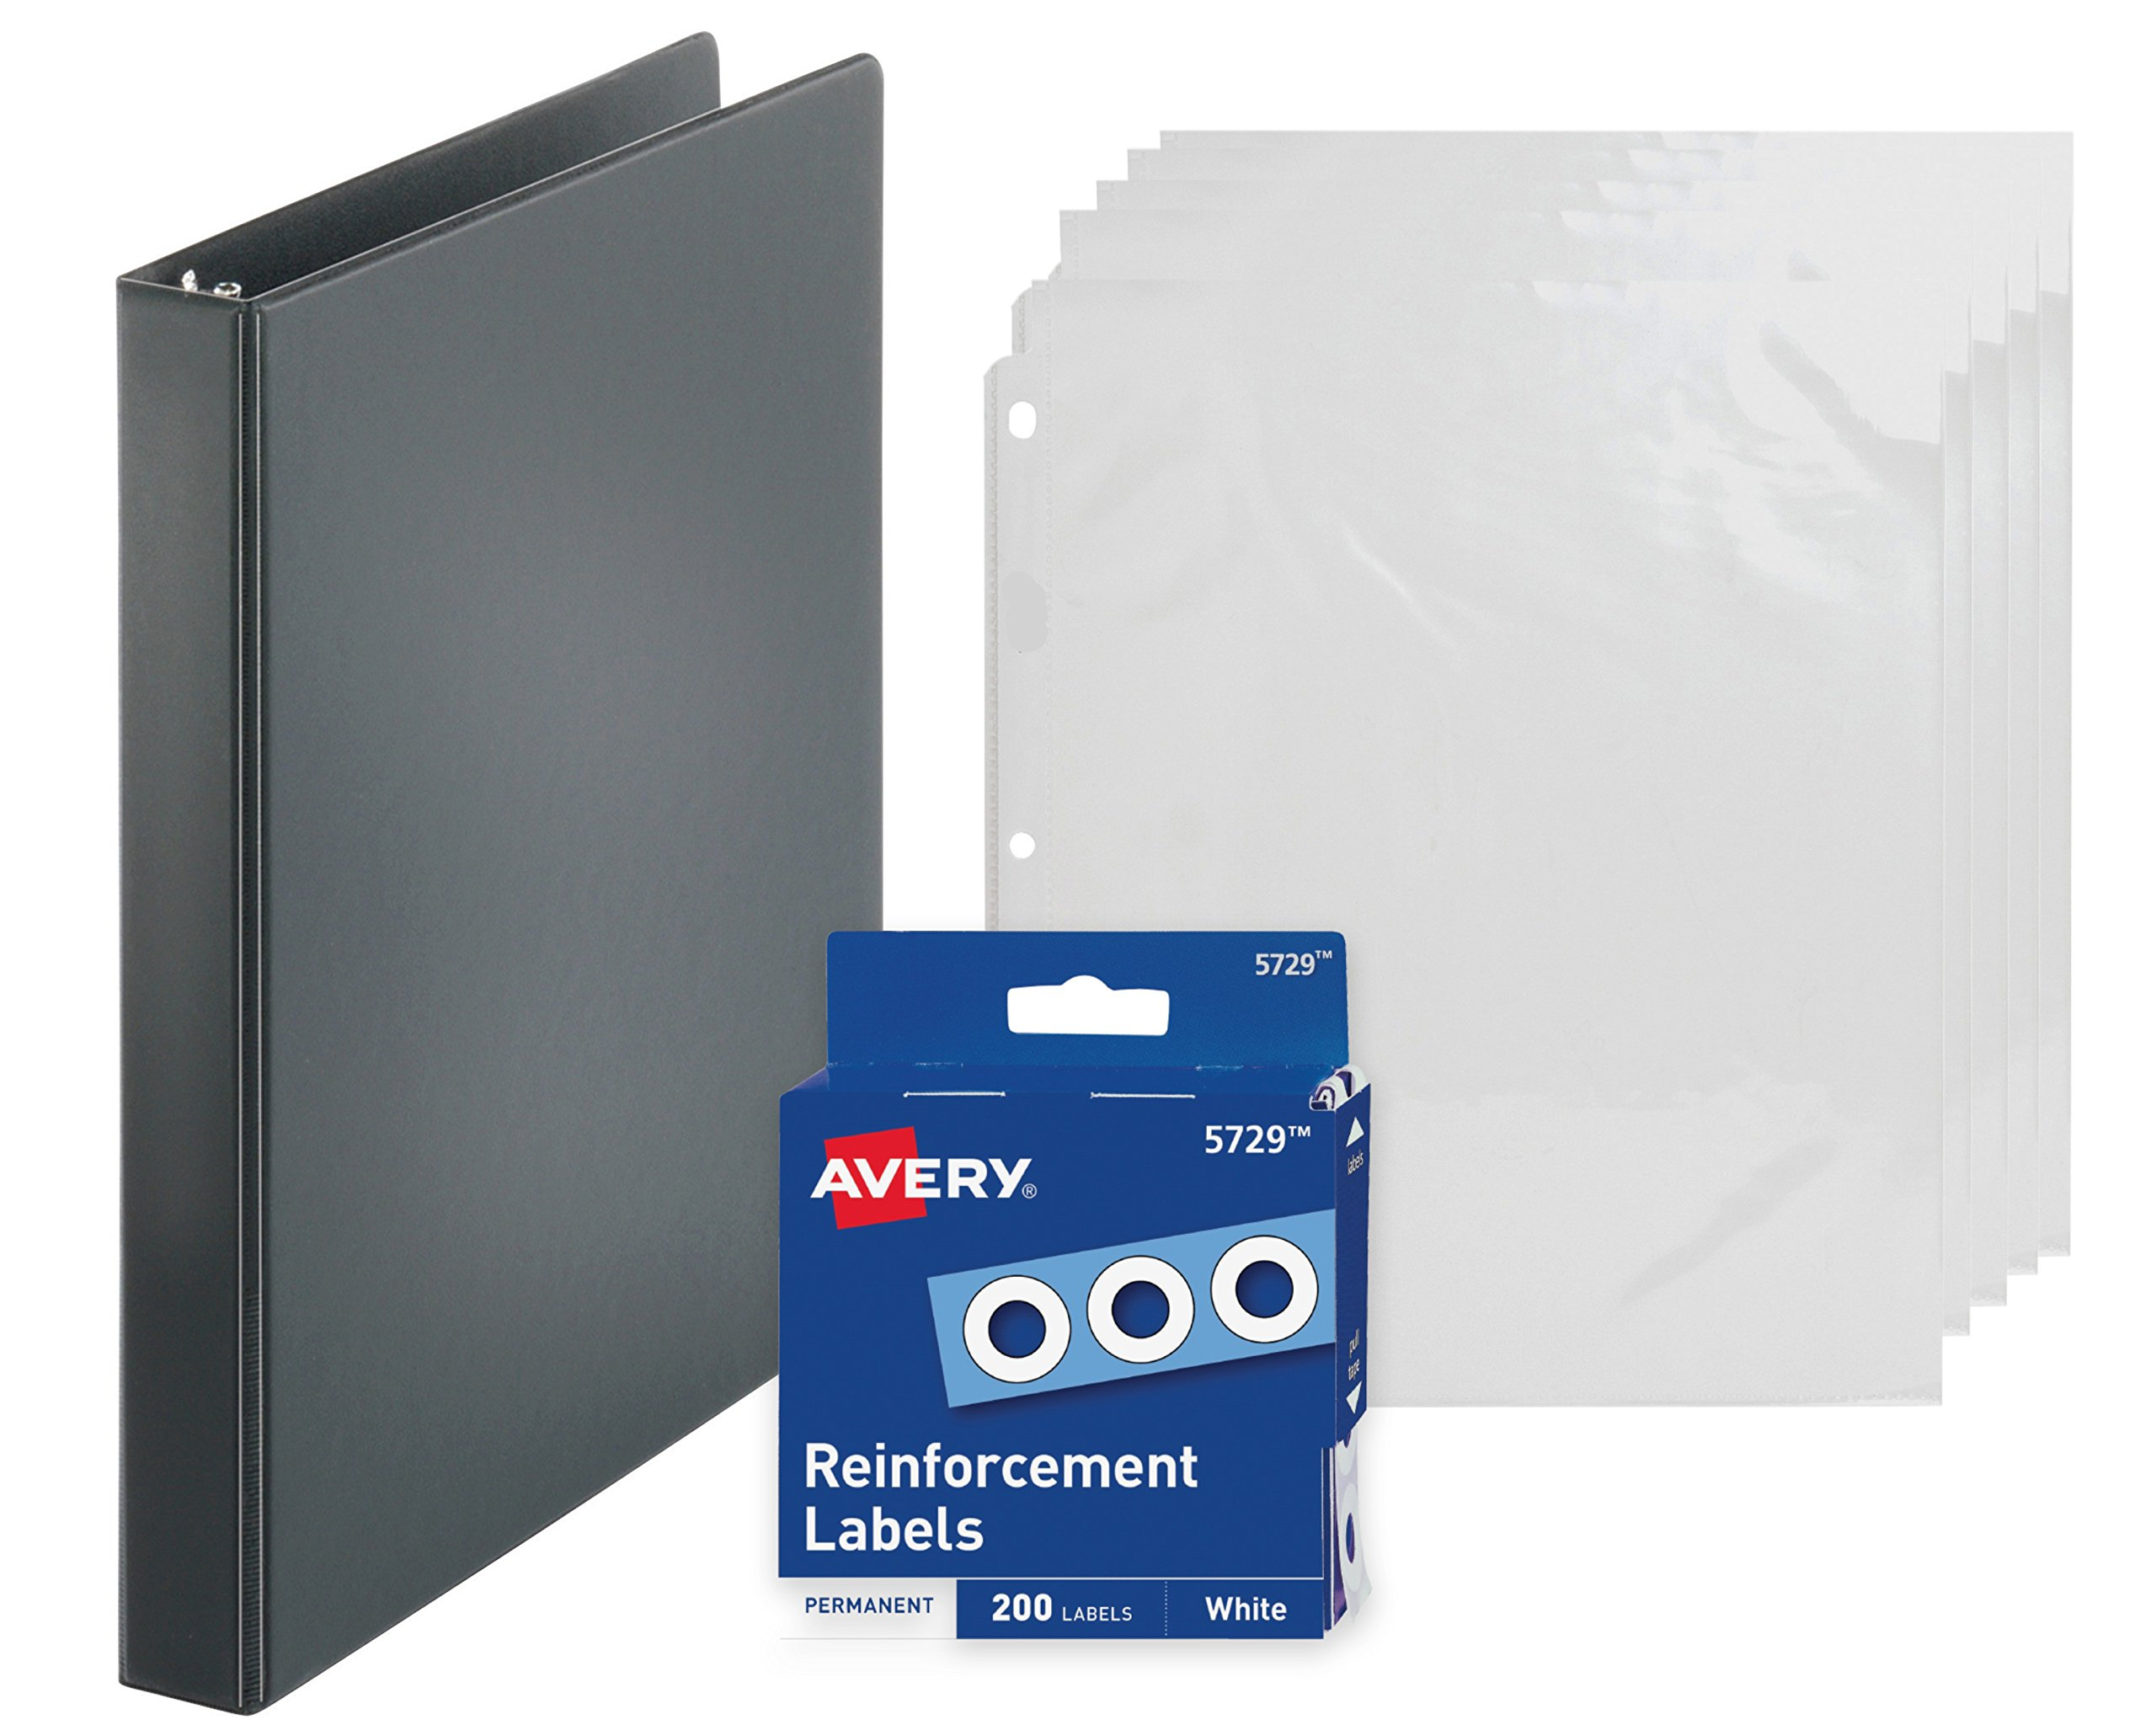 3-Ring Binder, 1 Inch, Presentation View Binder - With 20 Top-Loading Clear Sheet Protectors - With 200 White Hole Reinforcements, Hole Reinforcers for 3 Ring Binders - Value Set (Black Ring Binder)